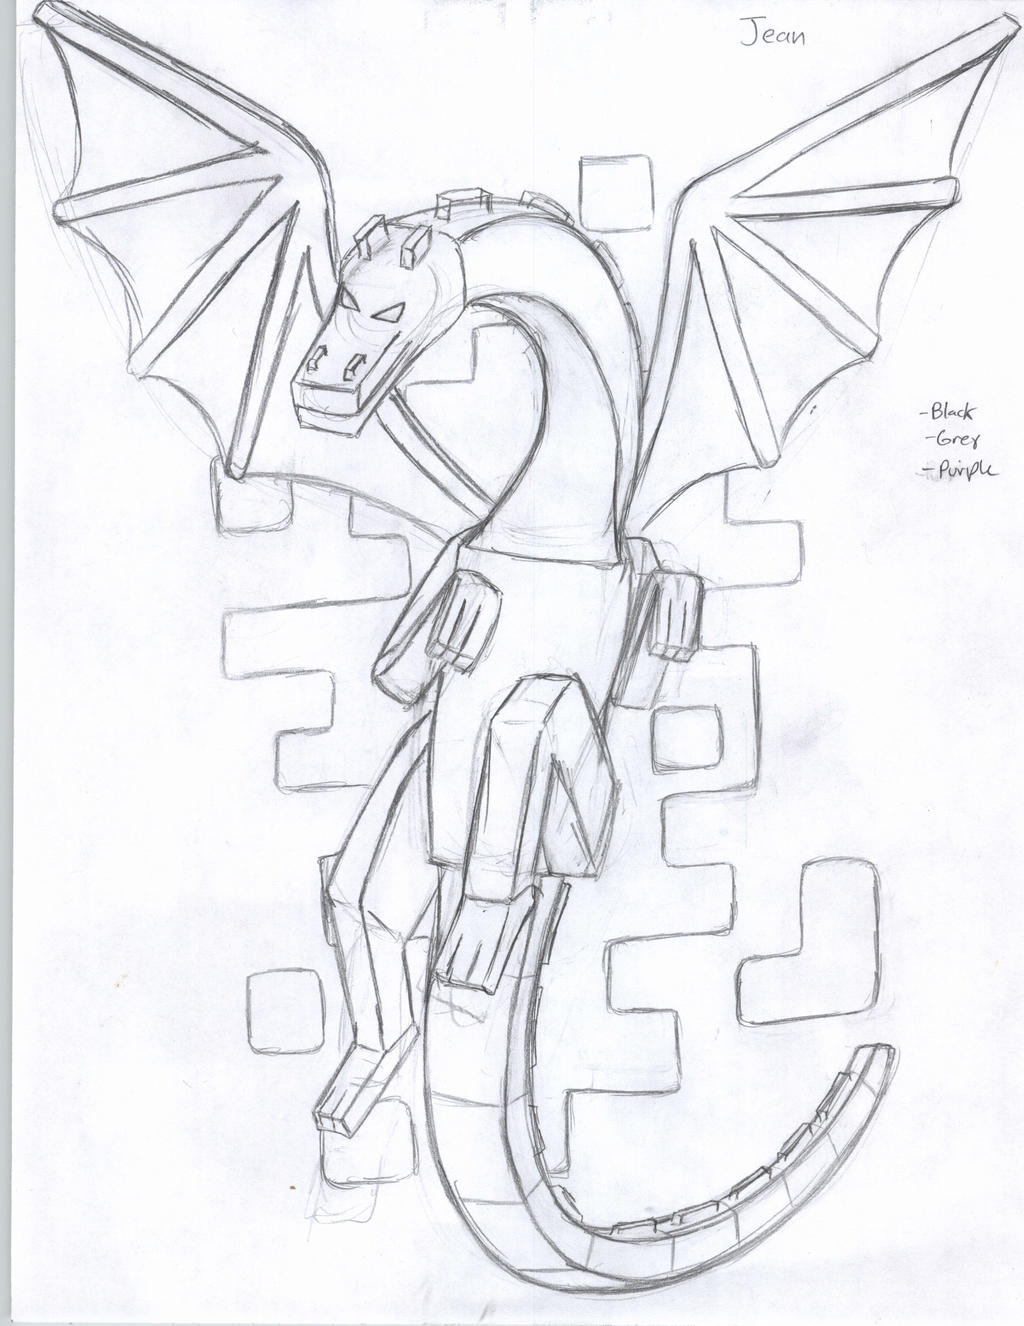 Jean The Ender Dragon By Kinglupus On DeviantArt